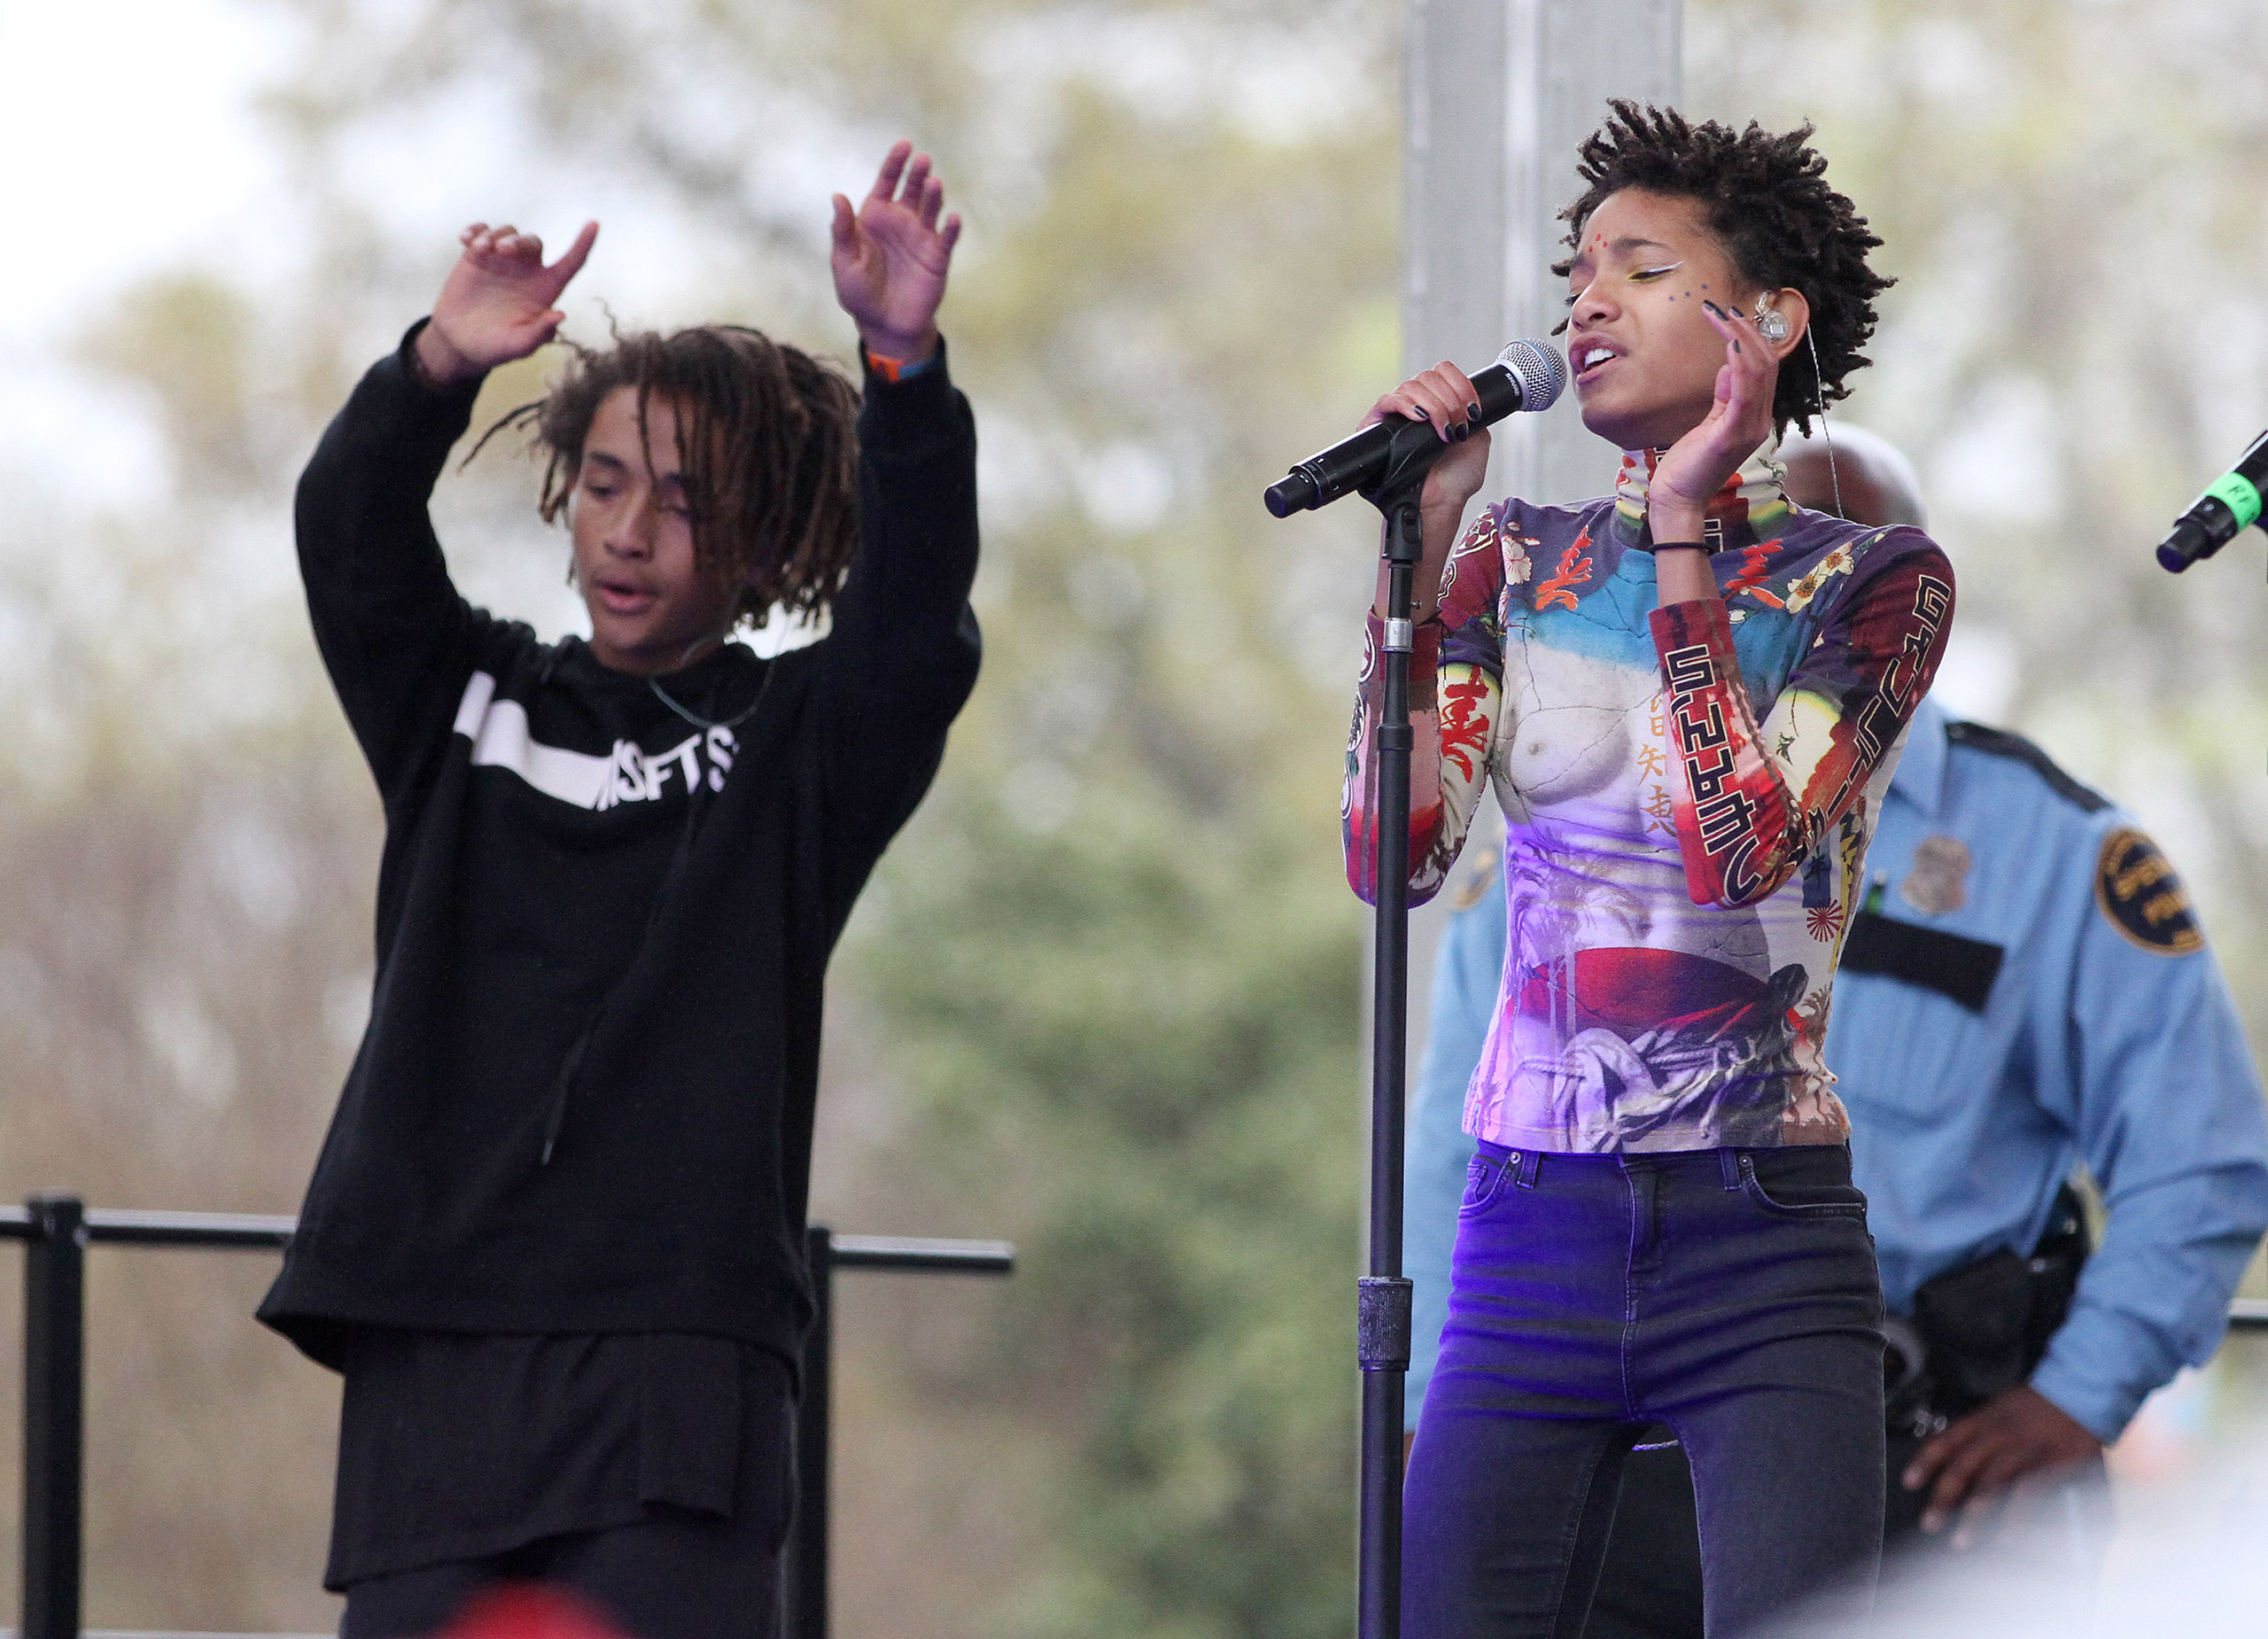 Willow and Jaden Smith right perform at the 2015 Broccoli City Festival at the Gateway DC Pavilion in Washington, D.C., April 25, 2015.